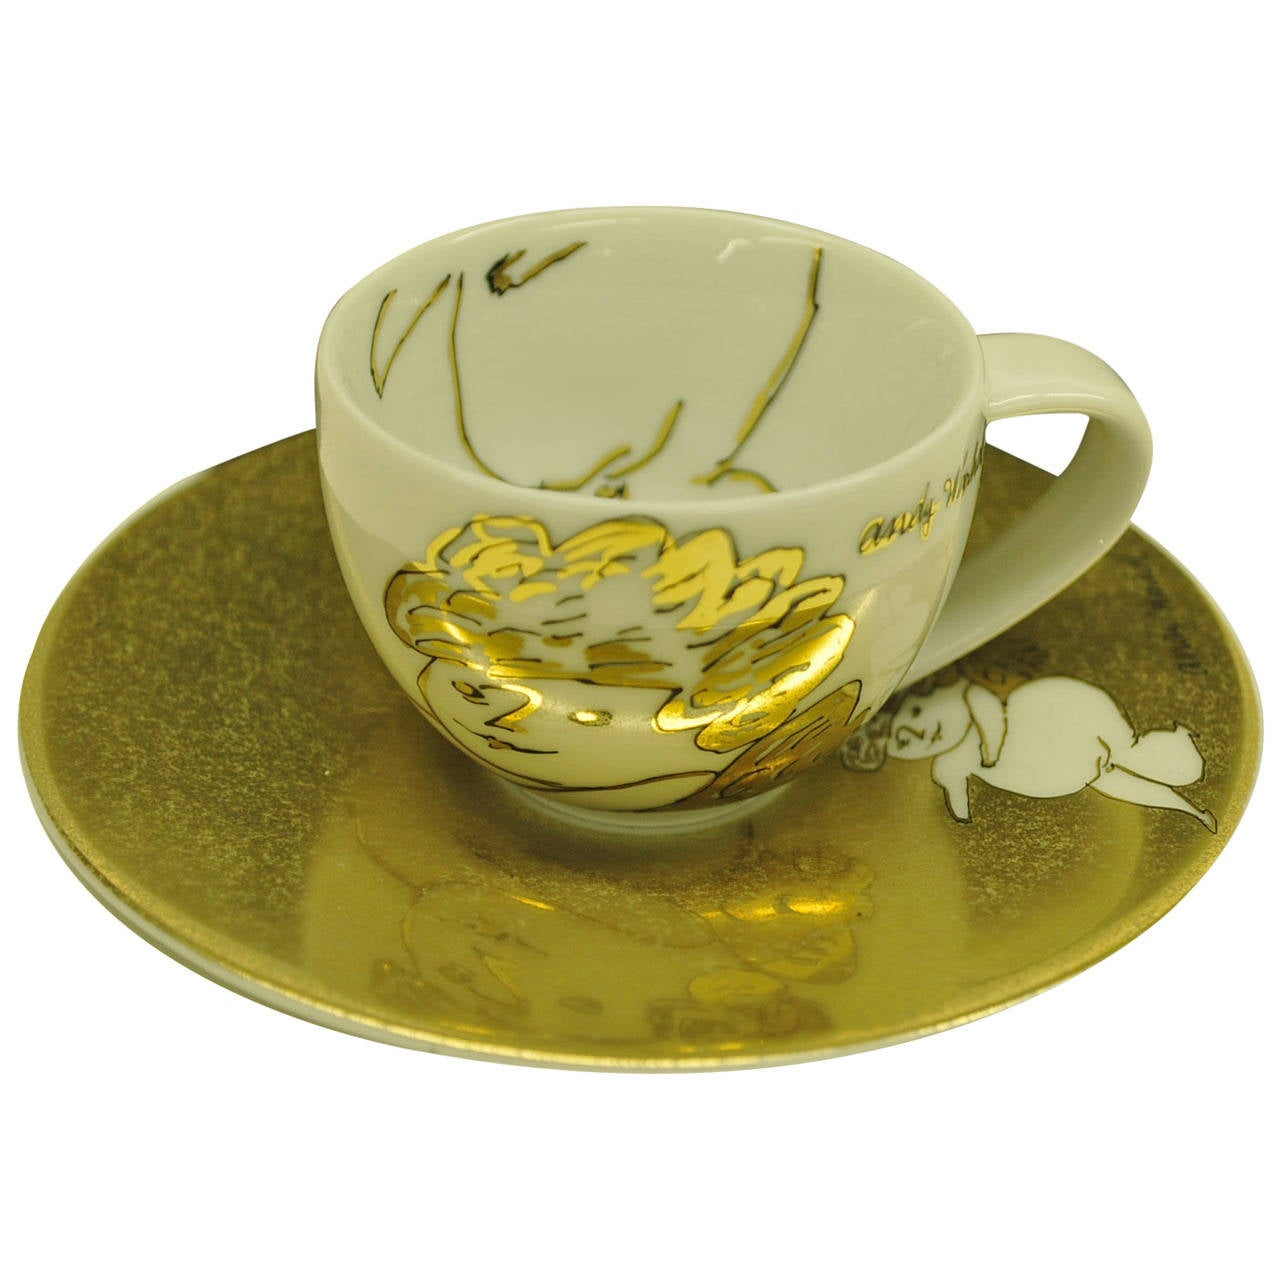 rosenthal studio line andy warhol cup and saucer at 1stdibs. Black Bedroom Furniture Sets. Home Design Ideas